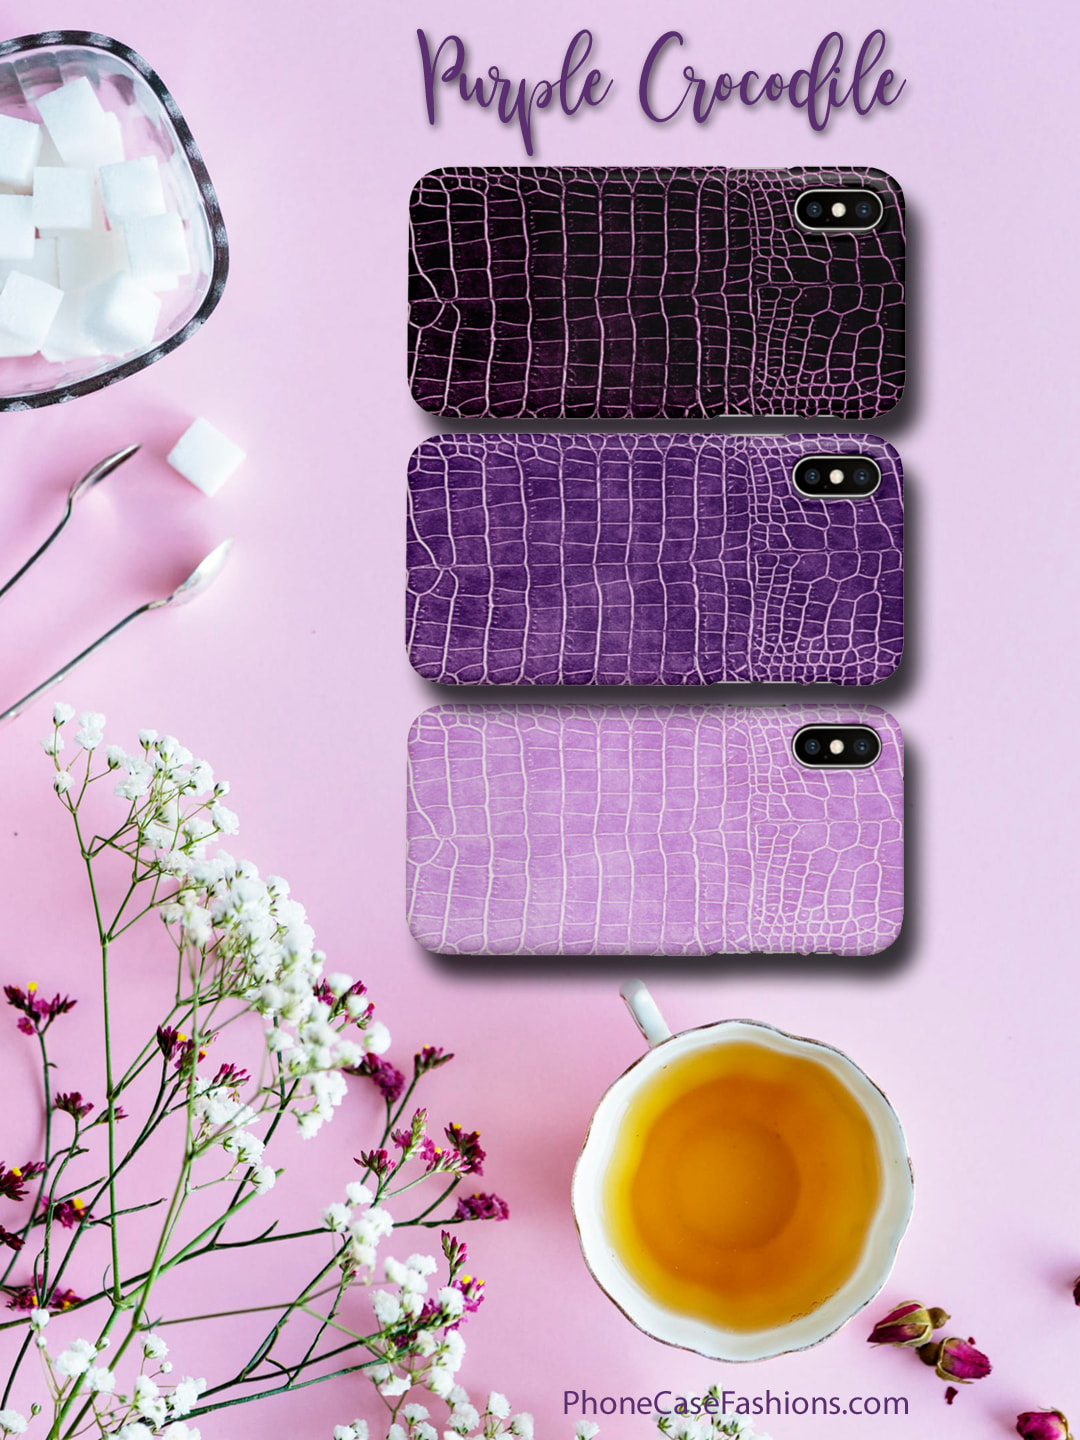 If purple, lavender or eggplant is your thing and you're wild about animal prints, these faux crocodile cell phone cases are the perfect addition to your accessories wardrobe. Don't hide behind an ugly case! Shop PhoneCaseFashions.com